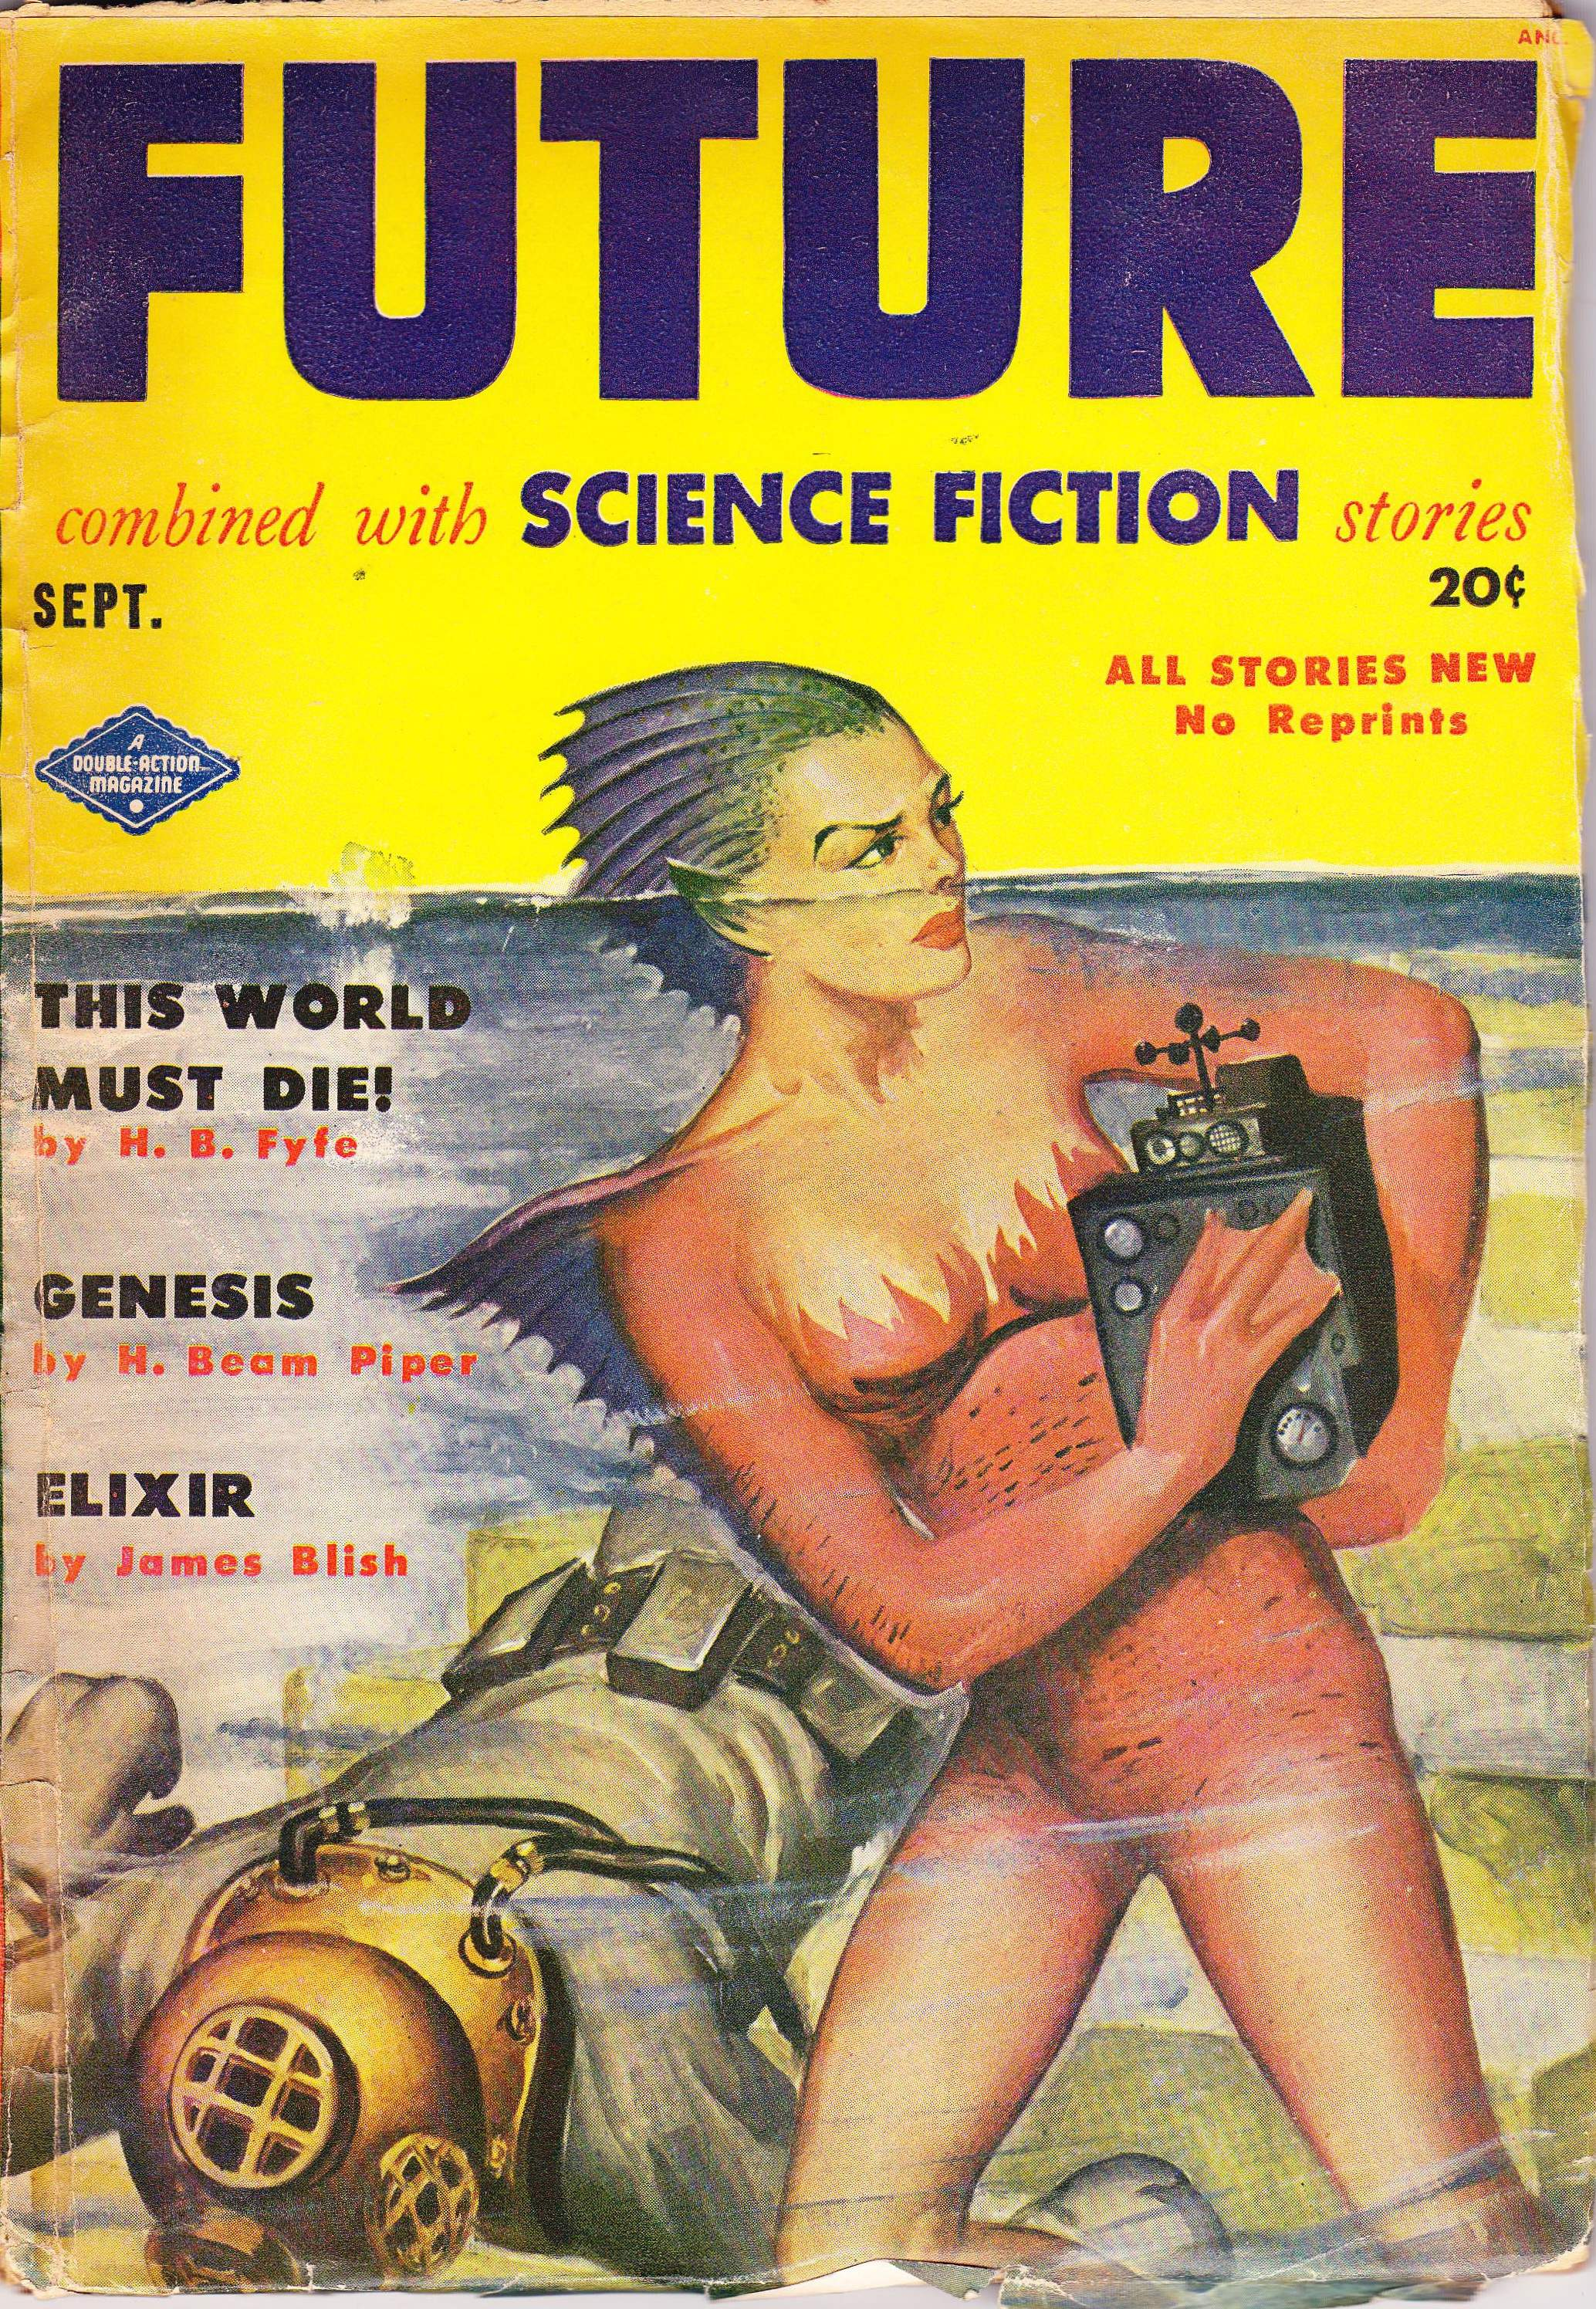 Image - Future combined with Science Fiction Stories, September 1951